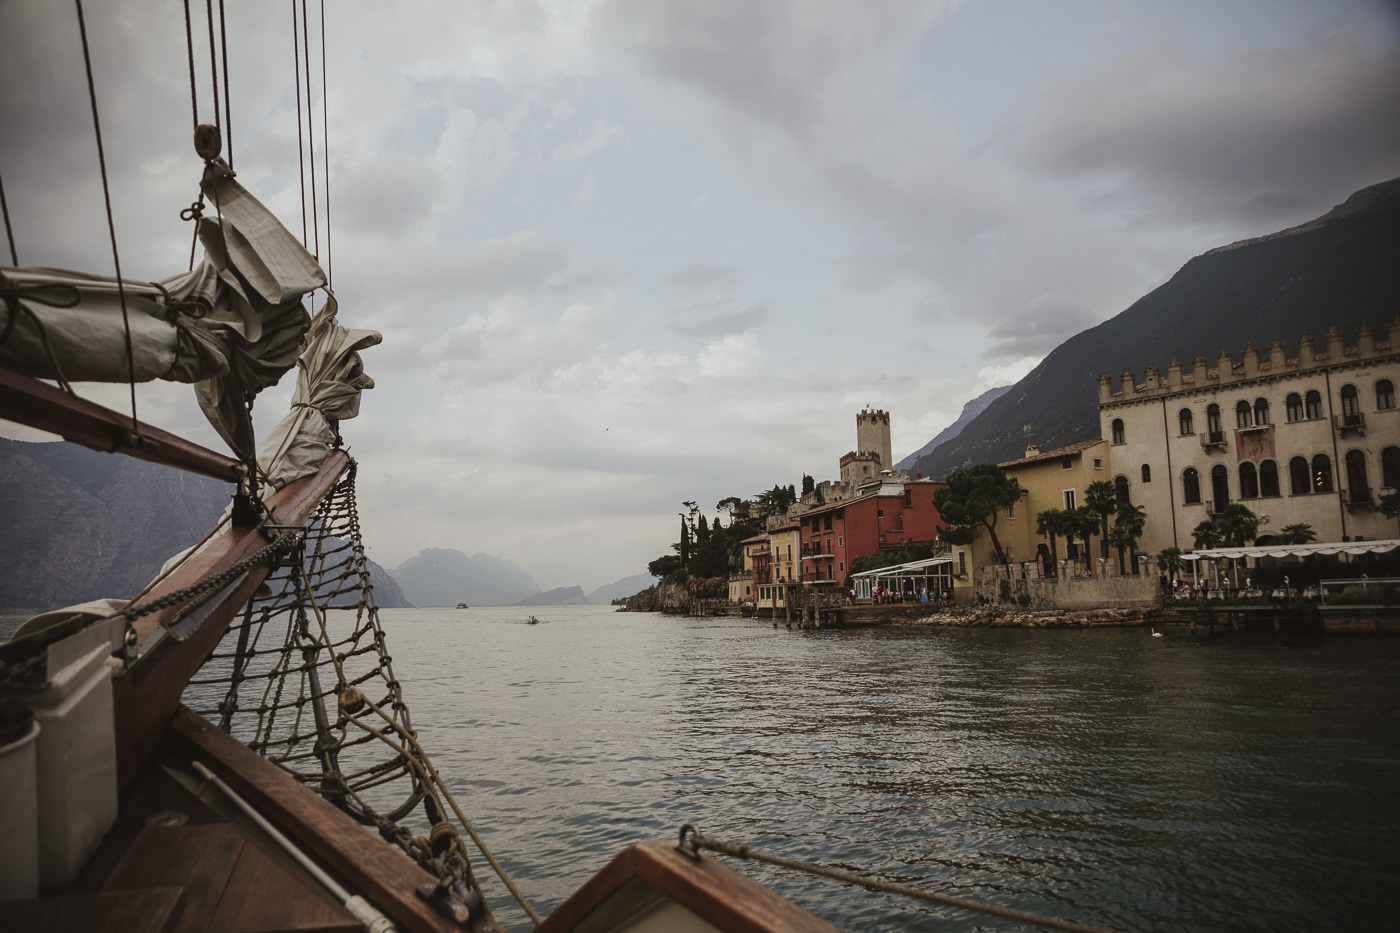 Mountains and traditional buildings seen from the edge of a yacht sailing on lake garda in italy by Joshua Wyborn